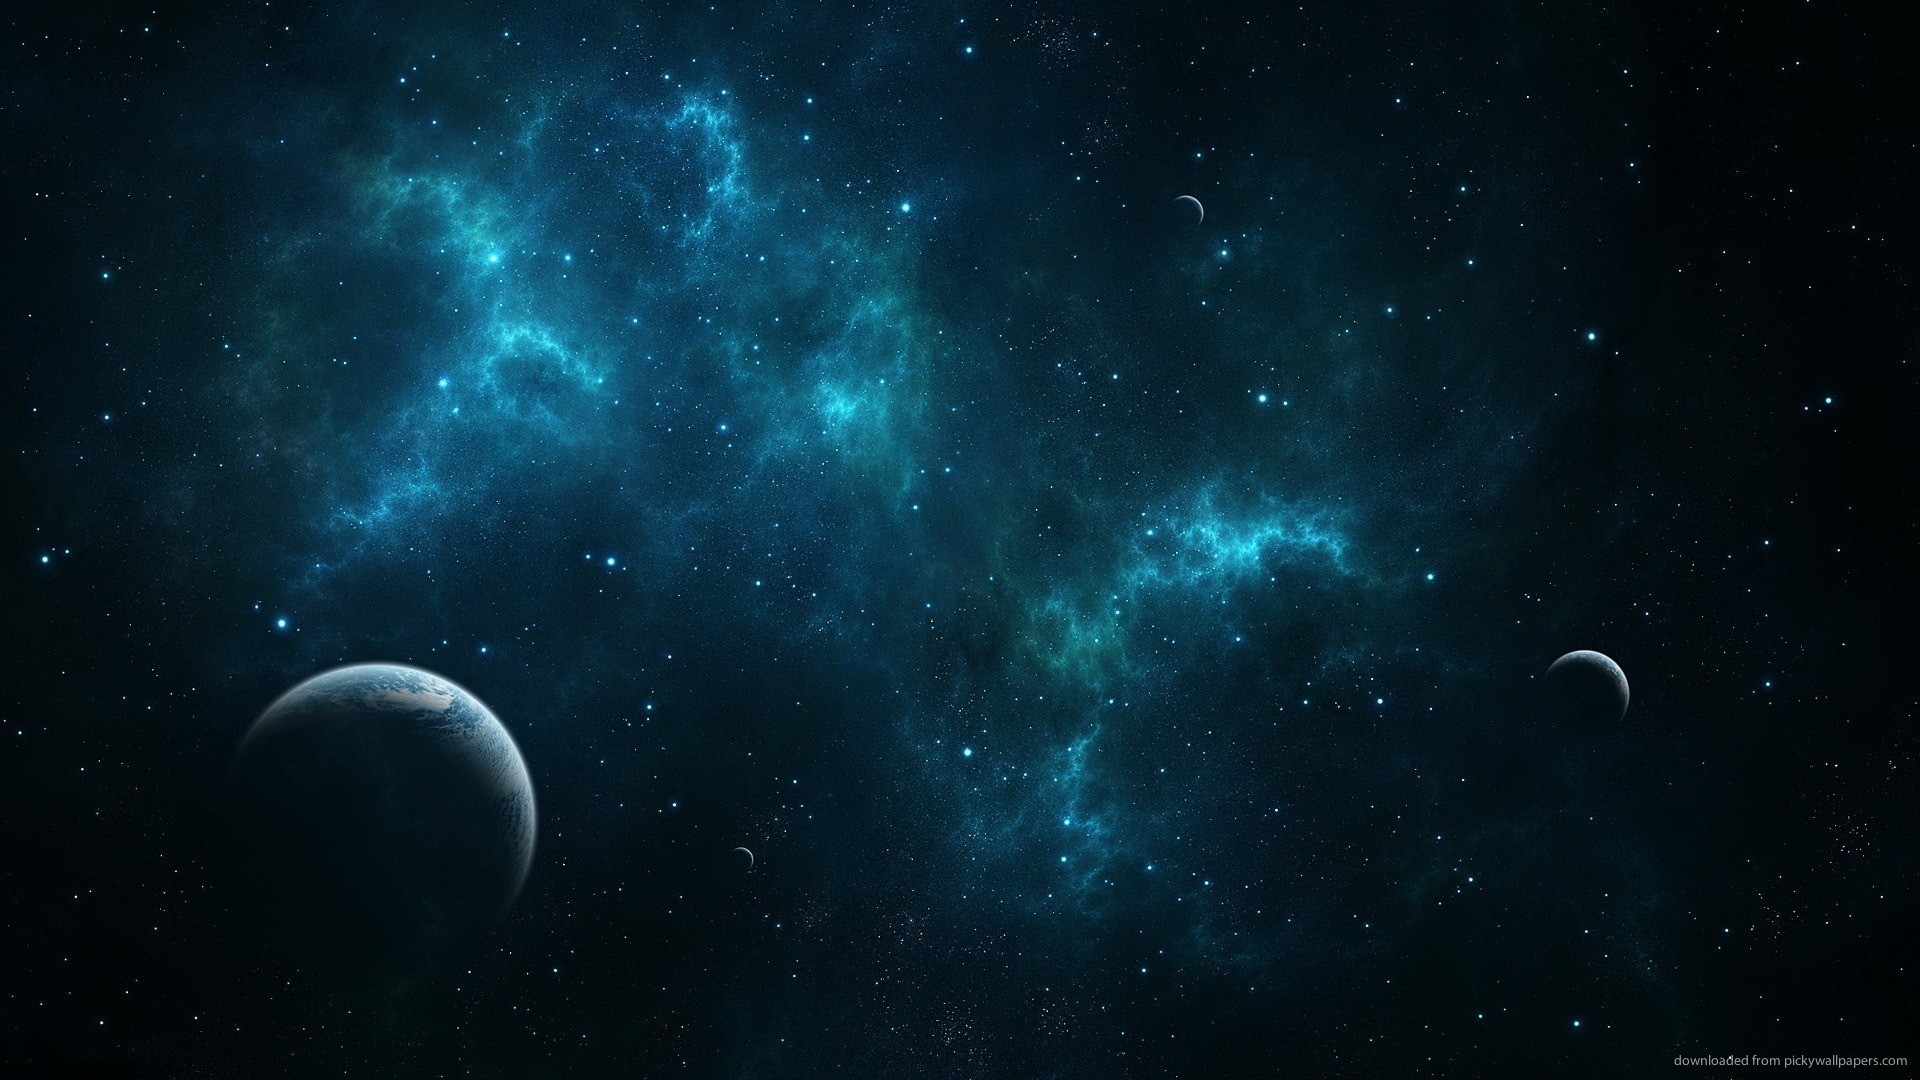 1920x1080 Space Wallpaper 1 Download Free Beautiful Wallpapers Of